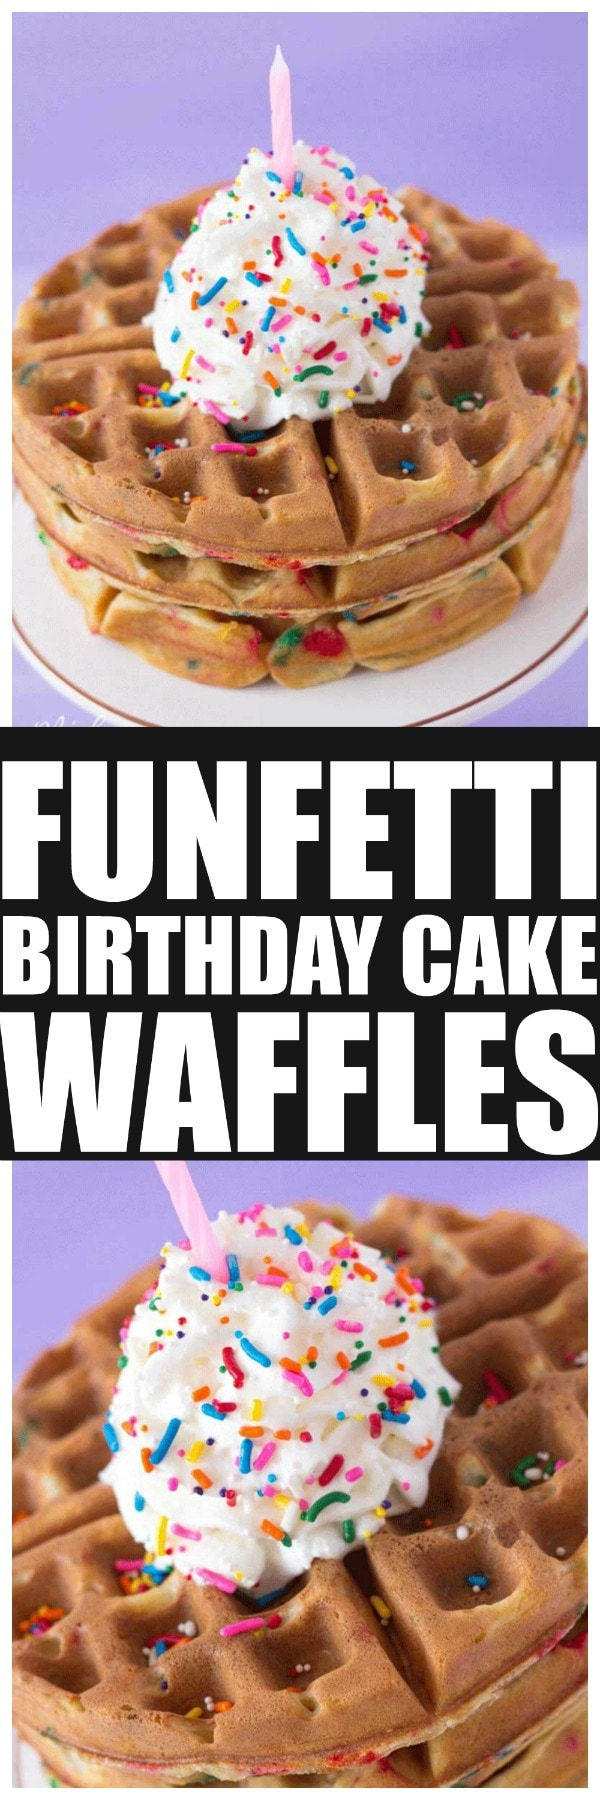 Birthday Cake Funfetti Waffles. Perfect birthday breakfast with these amazing Birthday Cake Funfetti Waffles. Everyone will love to have them for breakfast! #waffles #ButtermilkWaffle #Birthday #BirthdayBreakfast #BirthdatWaffle #Funfetti #FunfettiWaffles